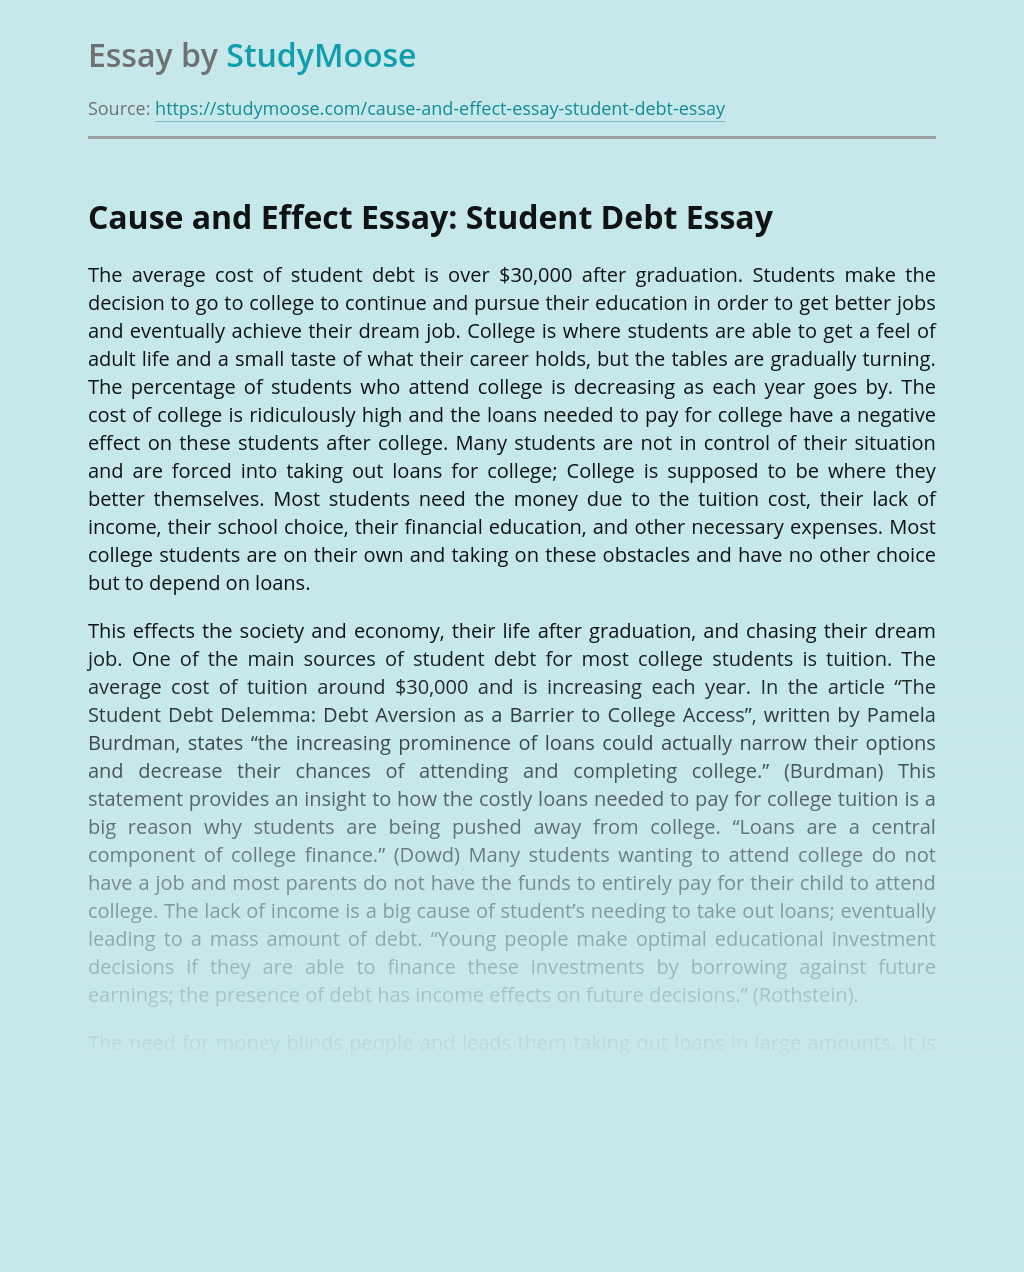 Cause and Effect Essay: Student Debt